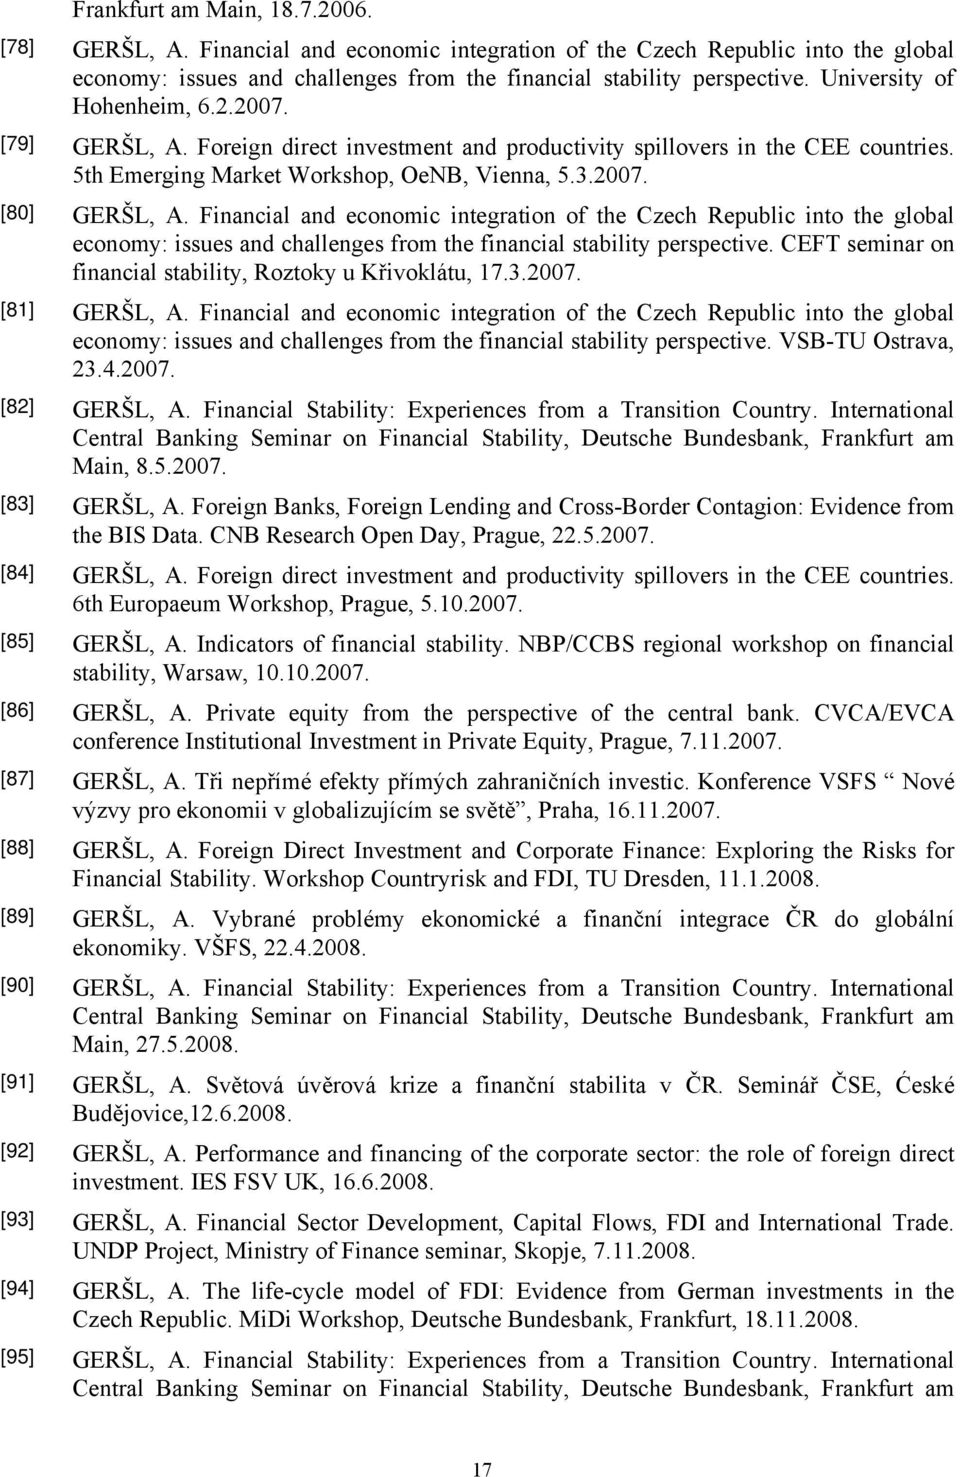 Financial and economic integration of the Czech Republic into the global economy: issues and challenges from the financial stability perspective.